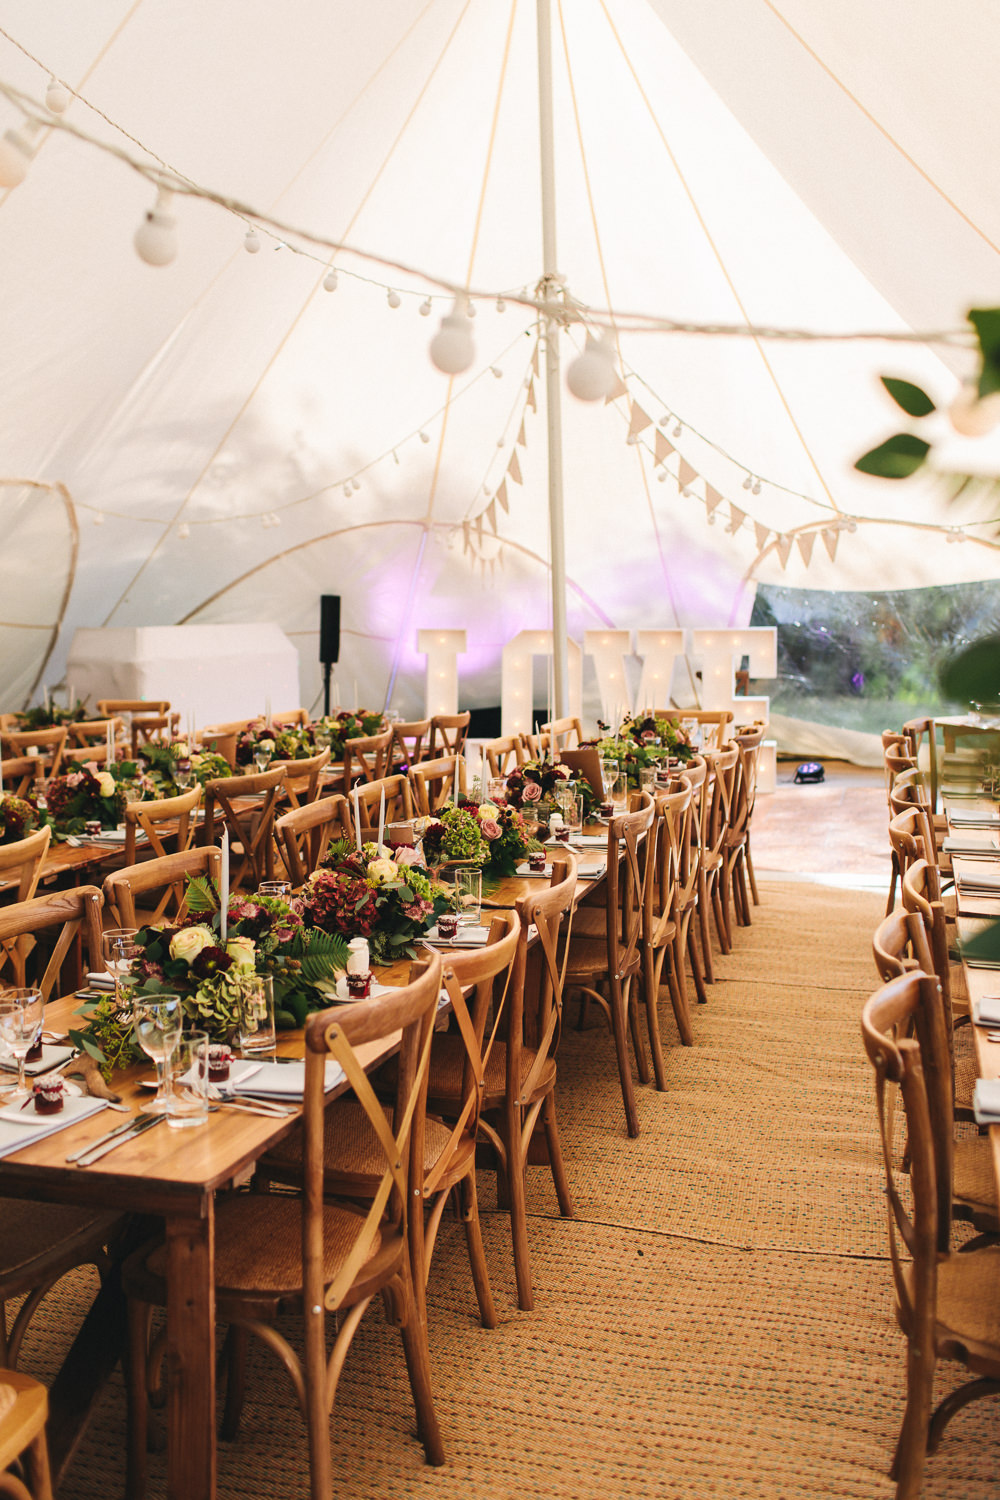 Stretch Tent Bunting Festoon Lighting Wooden Tables Cross Back Chairs Greenery Flowers Floral Farm Wedding Jessica O'Shaughnessy Photography